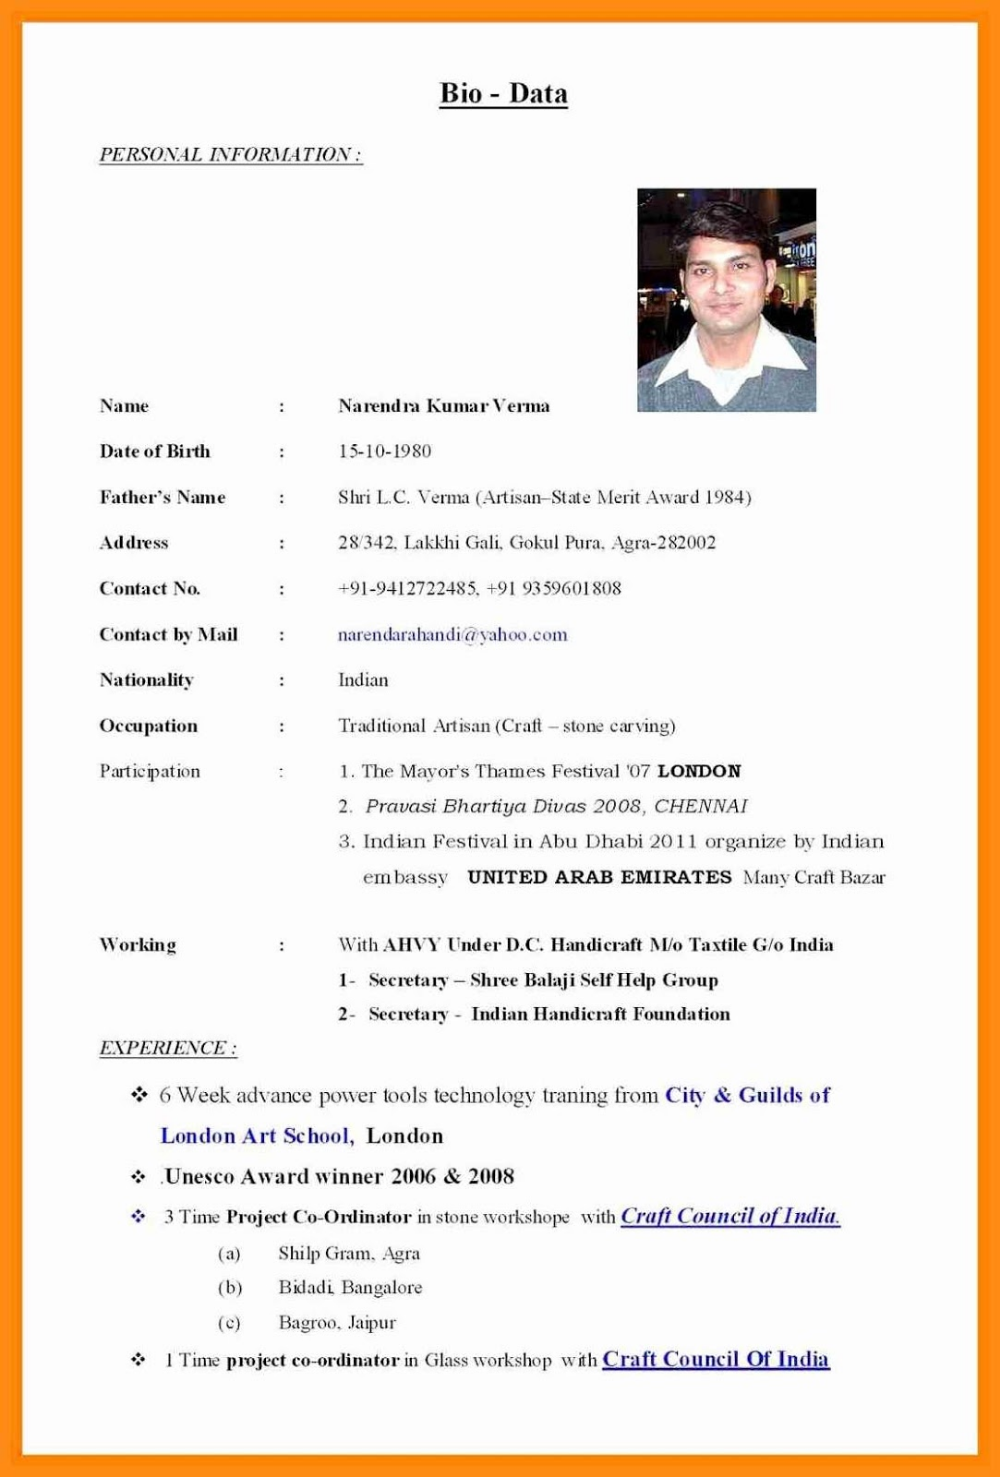 Marriage Biodata Format In Word For Boy Marriage Biodata Format In Word Bio Data For Marriage Biodata Format Marriage Biodata Format